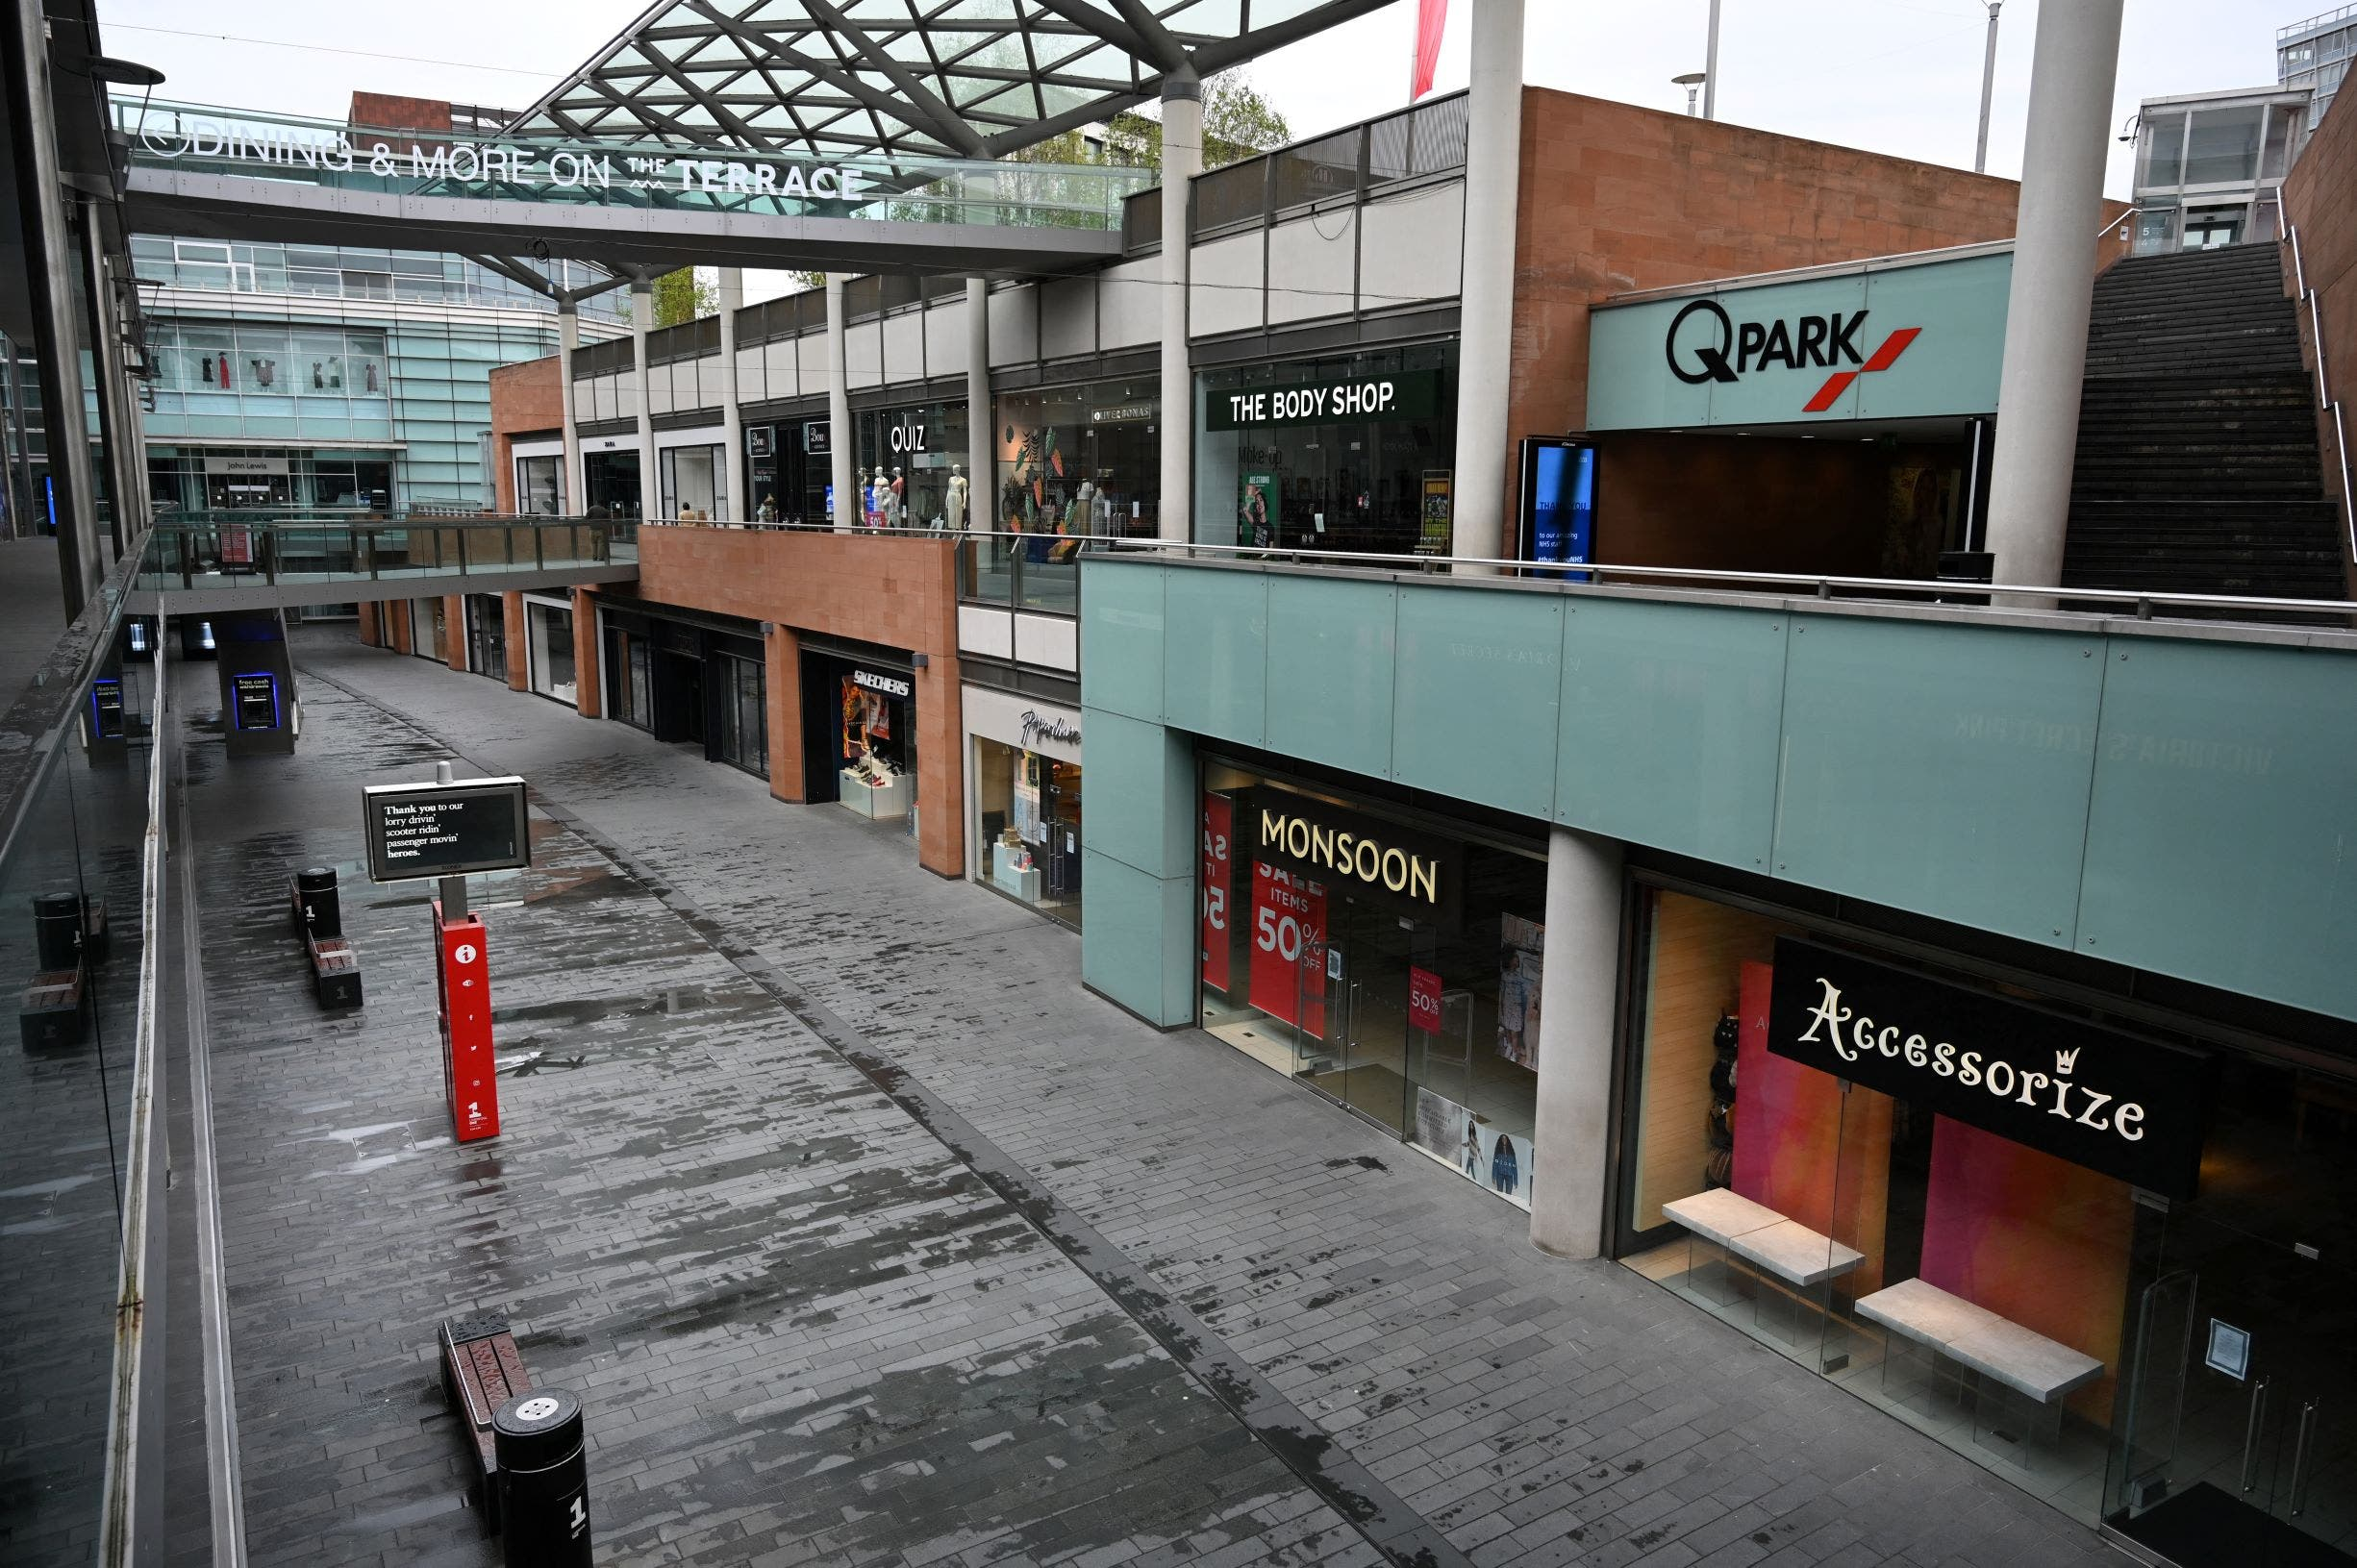 Shops are closed and the shopping centre seen empty during the nationwide lockdown because of the novel coronavirus outbreak in the centre of Liverpool, northwest England, on April 18, 2020. (AFP)